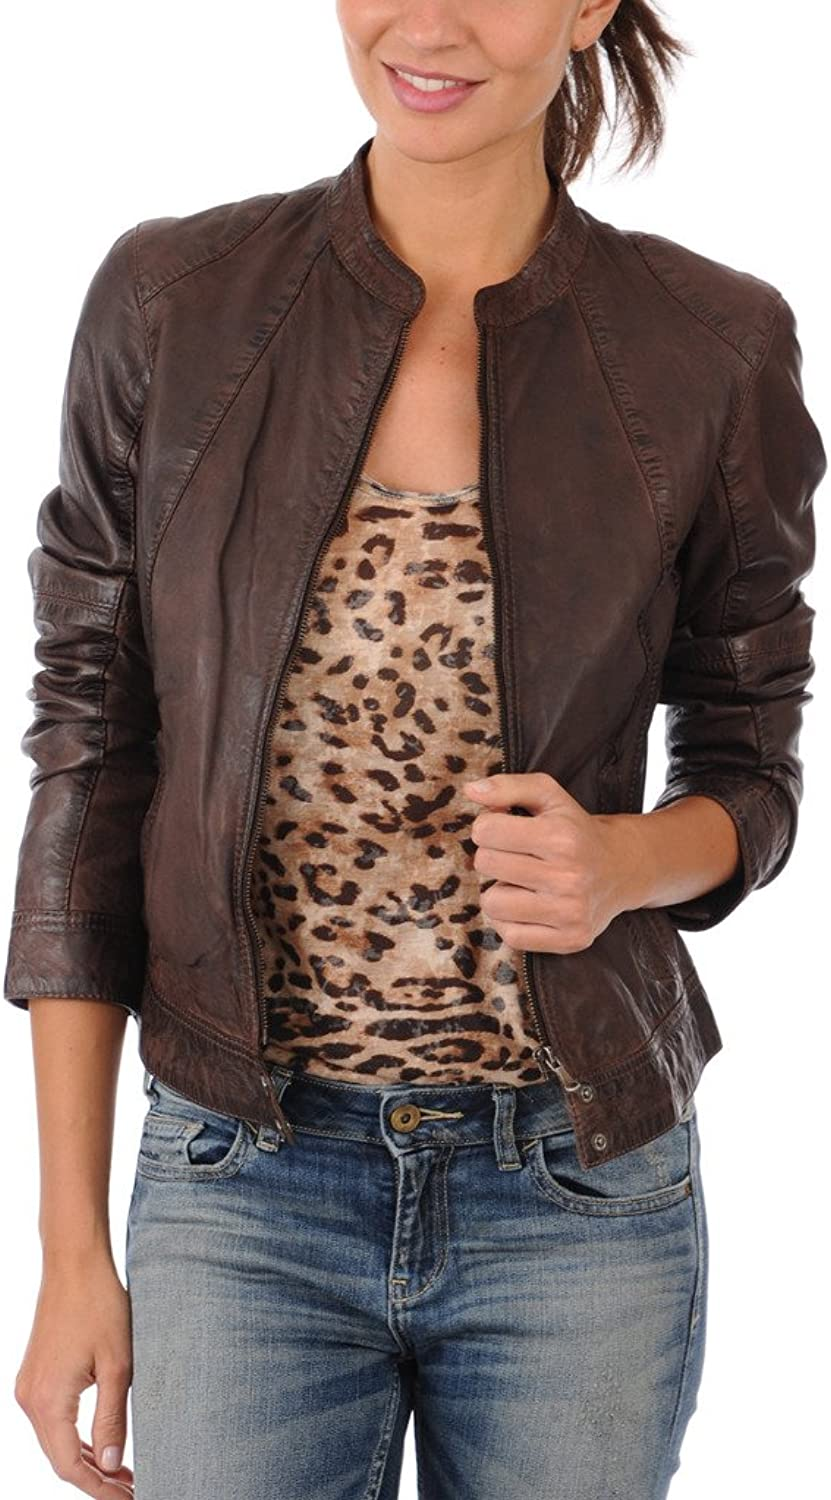 Captain Cory Womens Burnt Browny Lambskin Genuine Leather Jacket, Biker Jacket